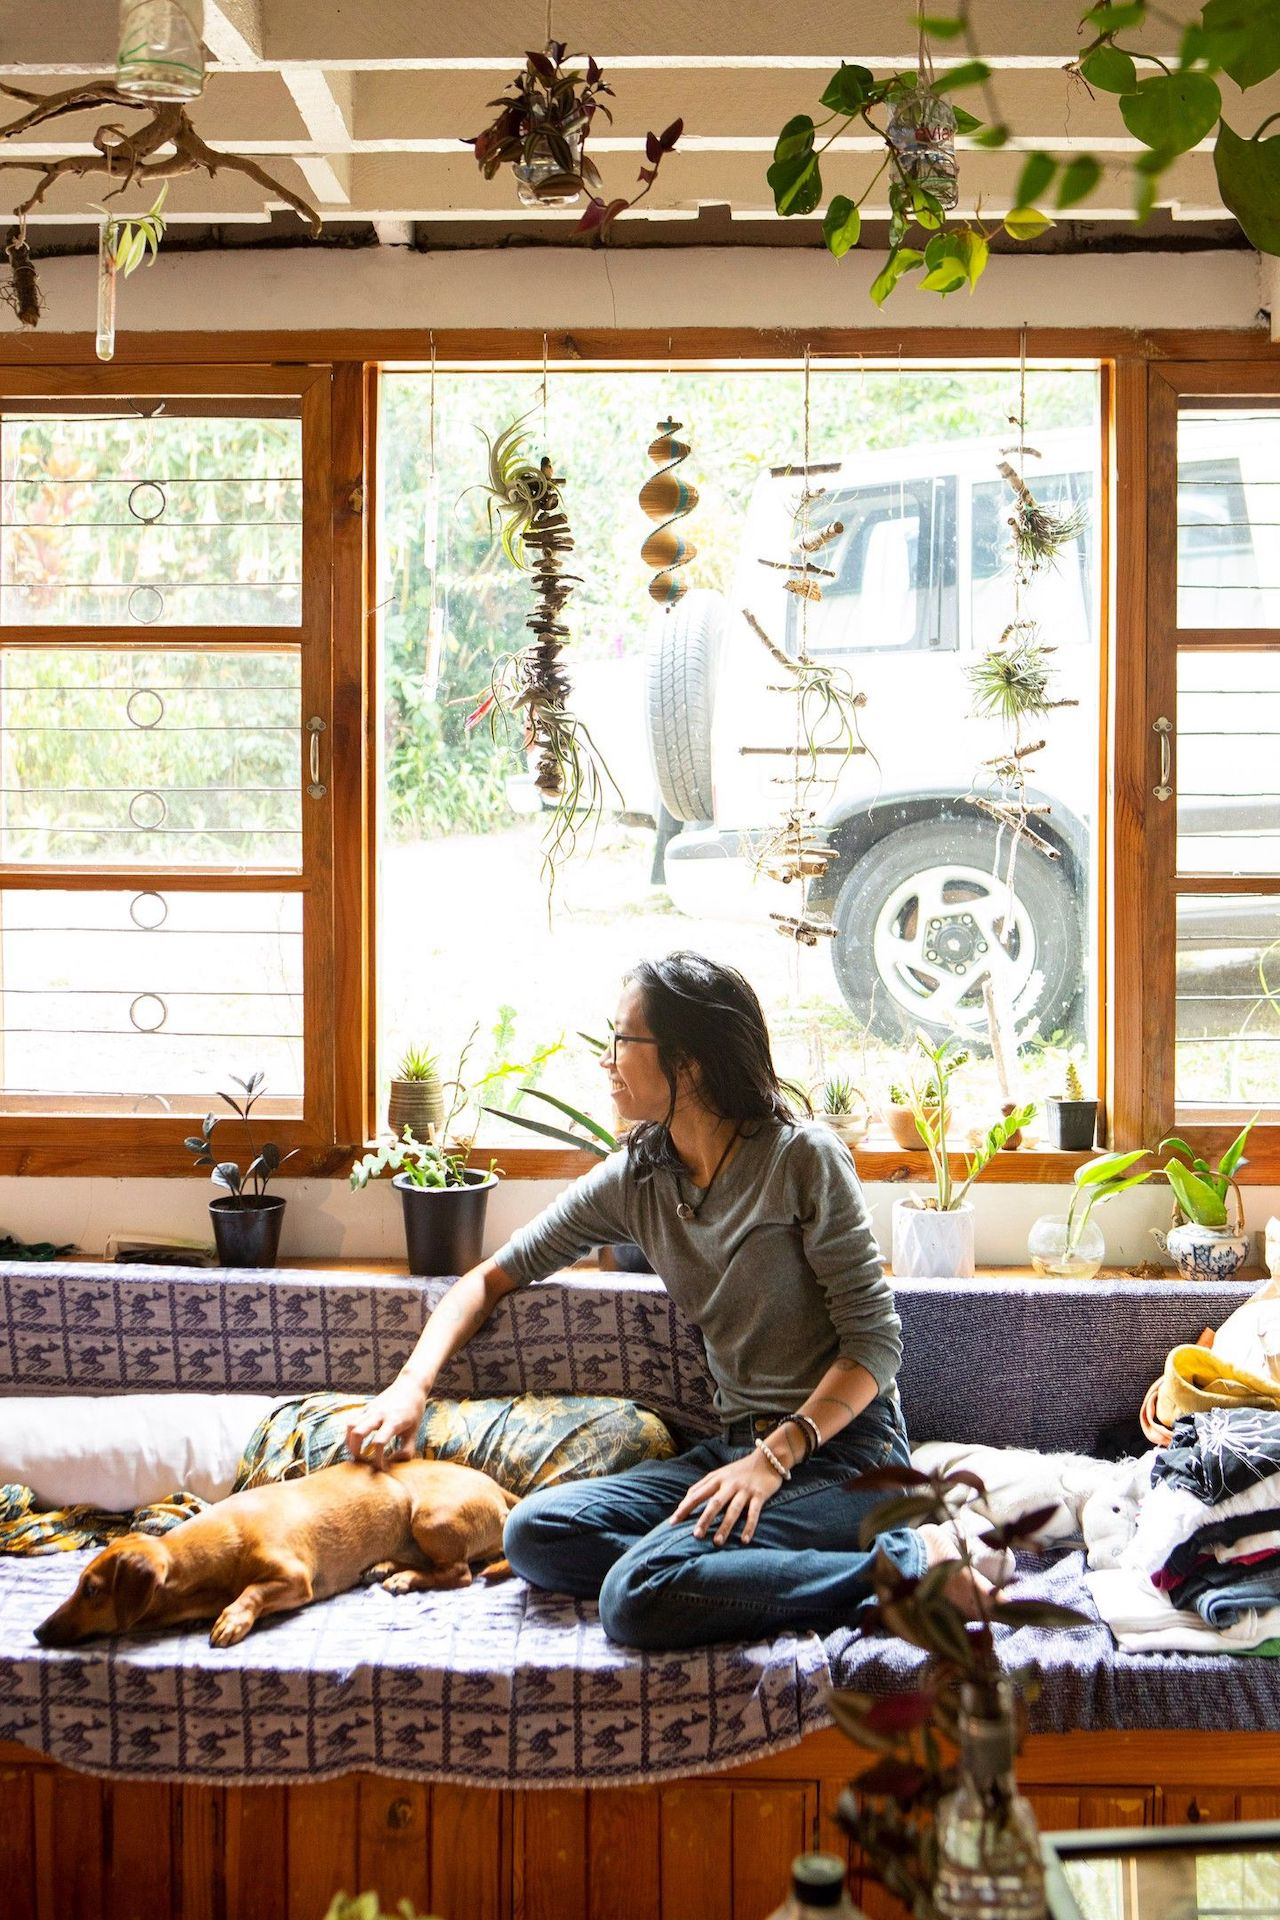 Solana Perez at home with her dog, photo by Miguel Nacianceno